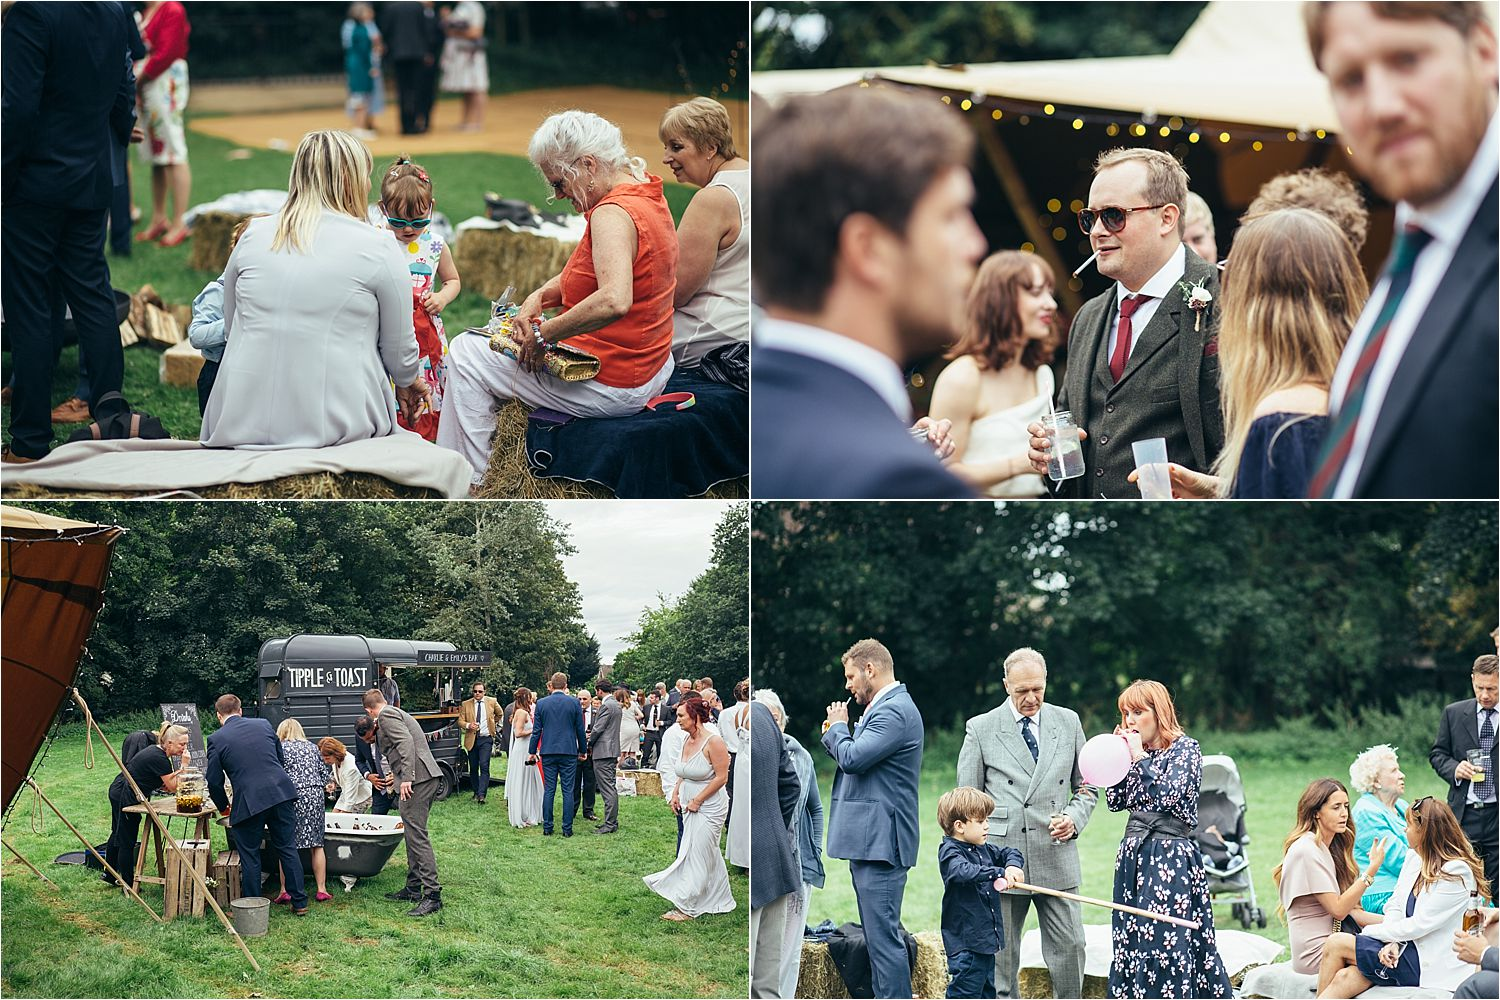 Guests relax and enjoy wedding reception at tipi wedding in Bedfordshire, tipi by Country tipis, bar by Tipple and Toast